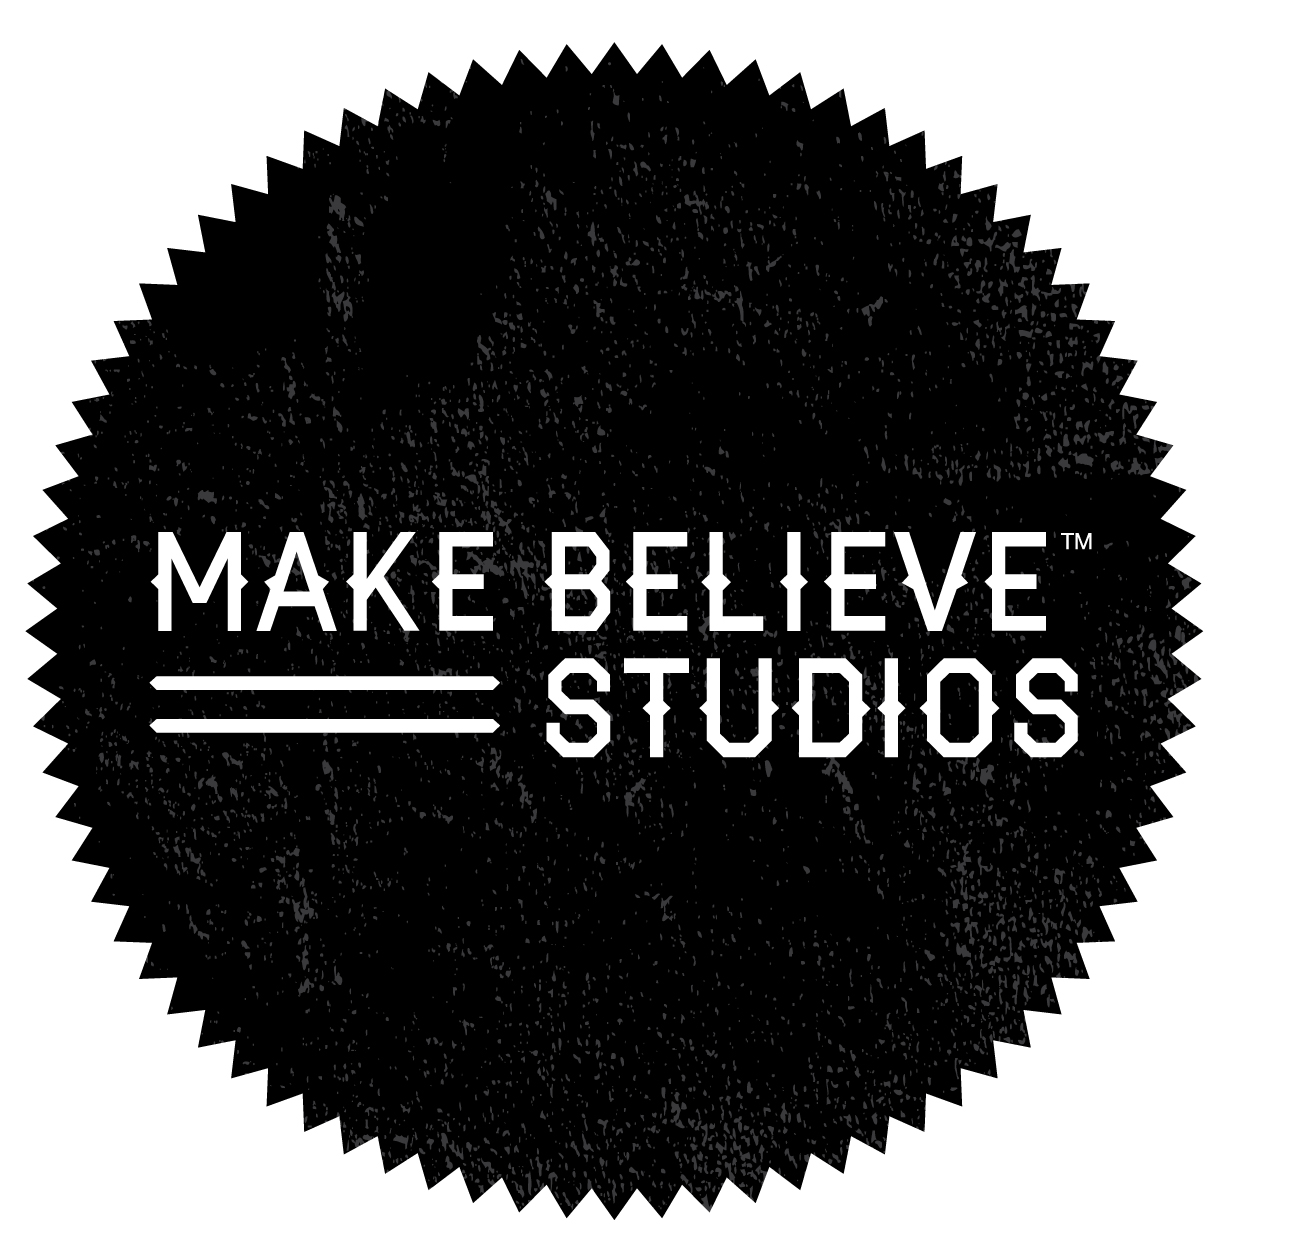 MakeBelieveStudiosOfficalLogoWEBbig.jpg